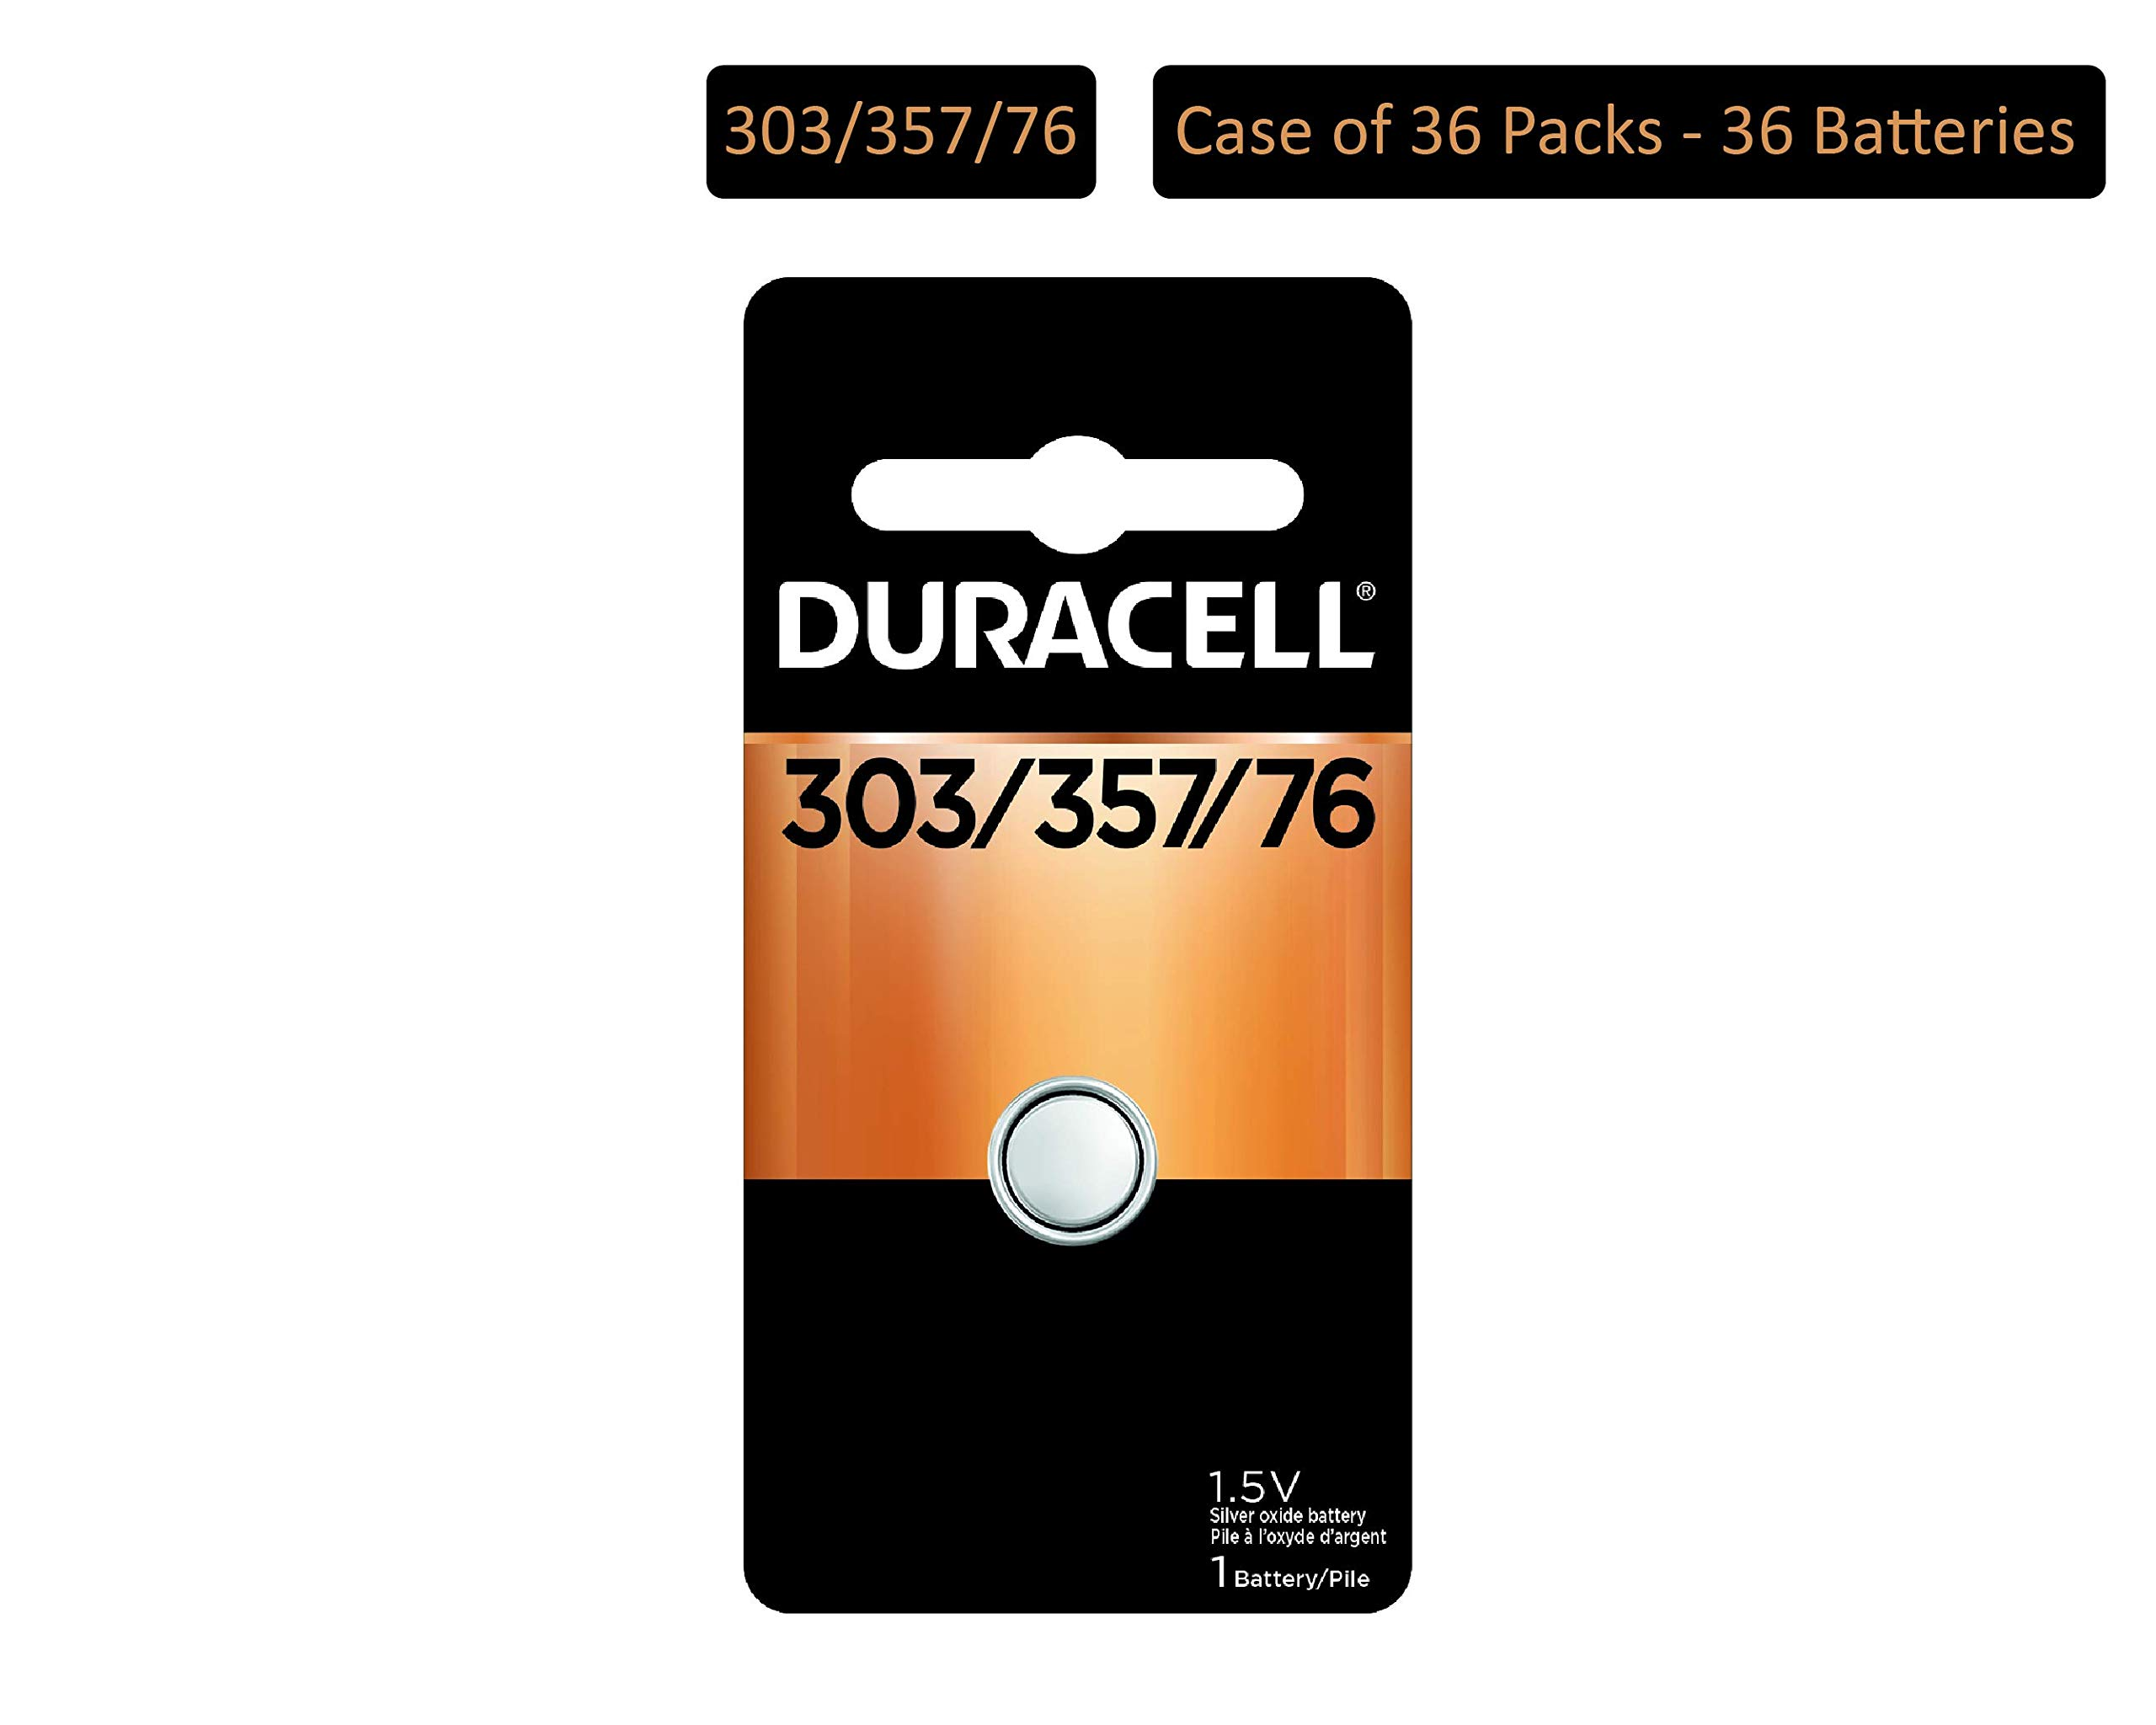 Duracell - 303/357 1.5V Silver Oxide Button Battery - Long-Lasting Battery (Pack of 36) by Duracell